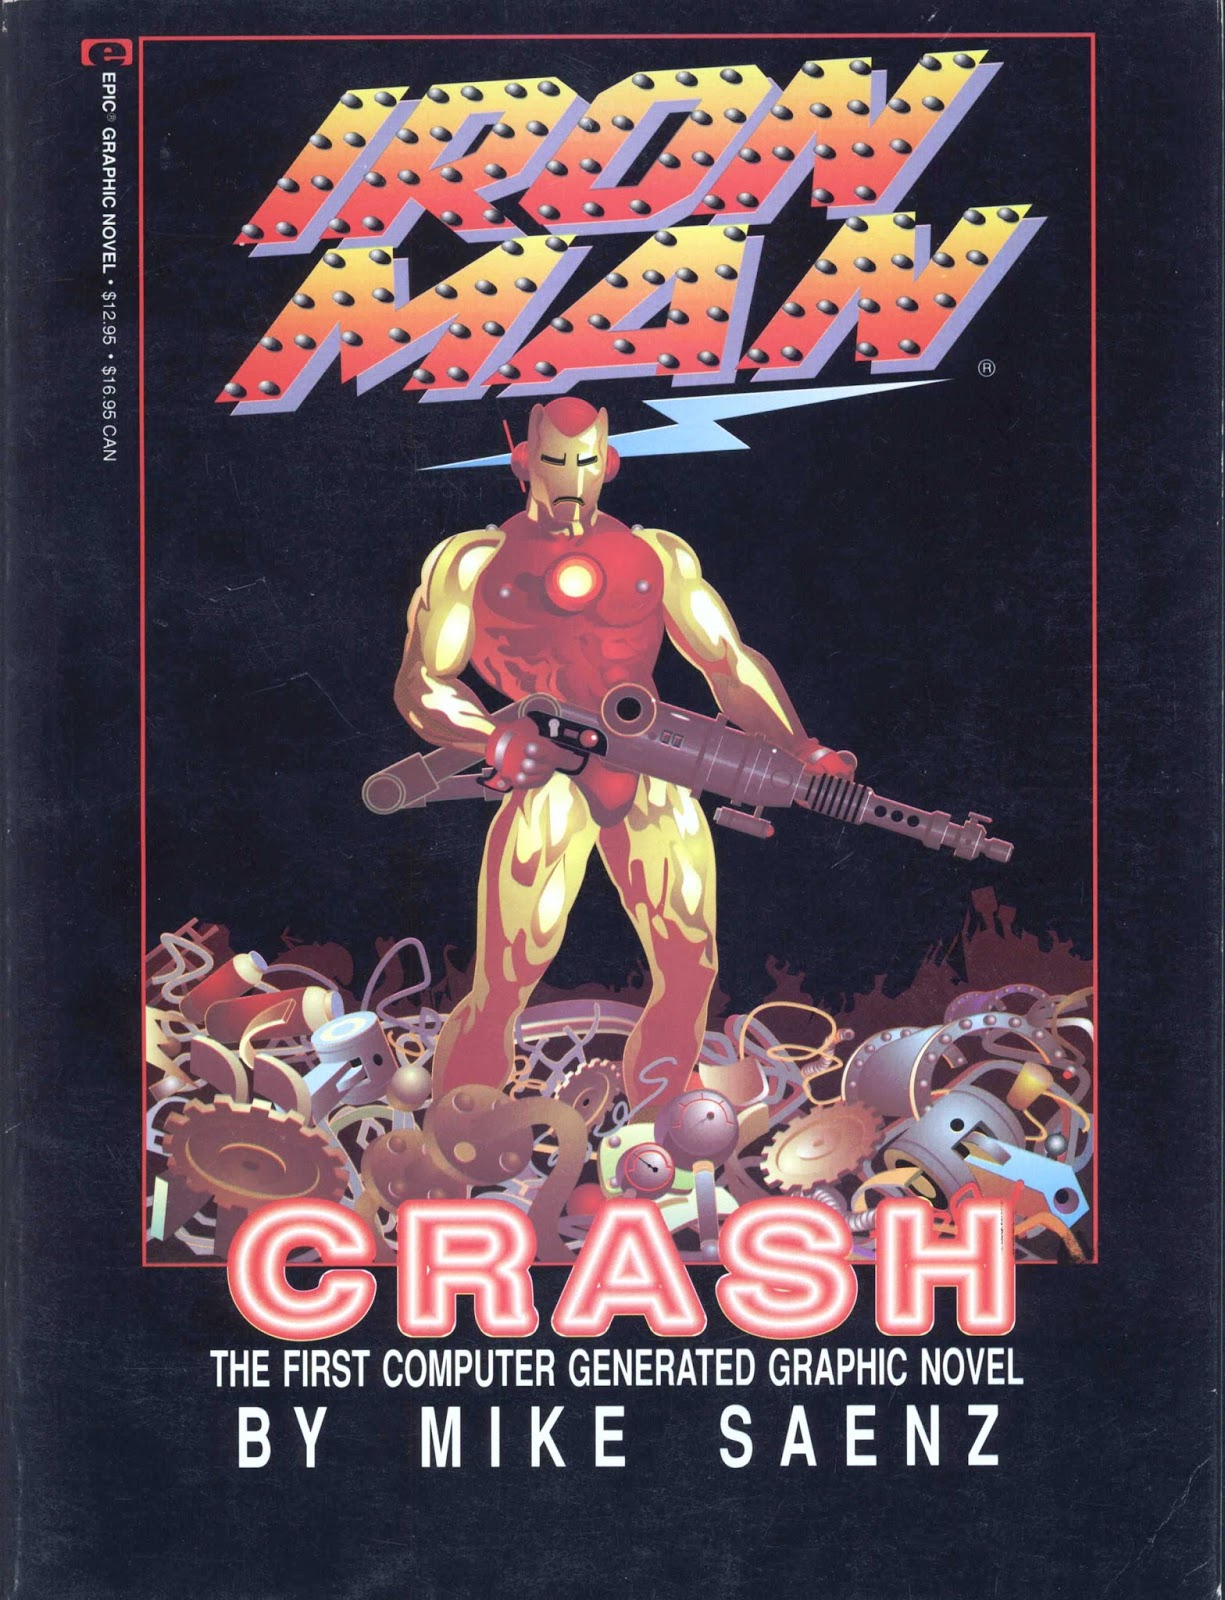 the porpor books blog sf and fantasy books iron man crash 72 pp was published as a marvel graphic novel in 1988 along the 65 pp graphic novel there is a 7 page afterward featuring an essay from